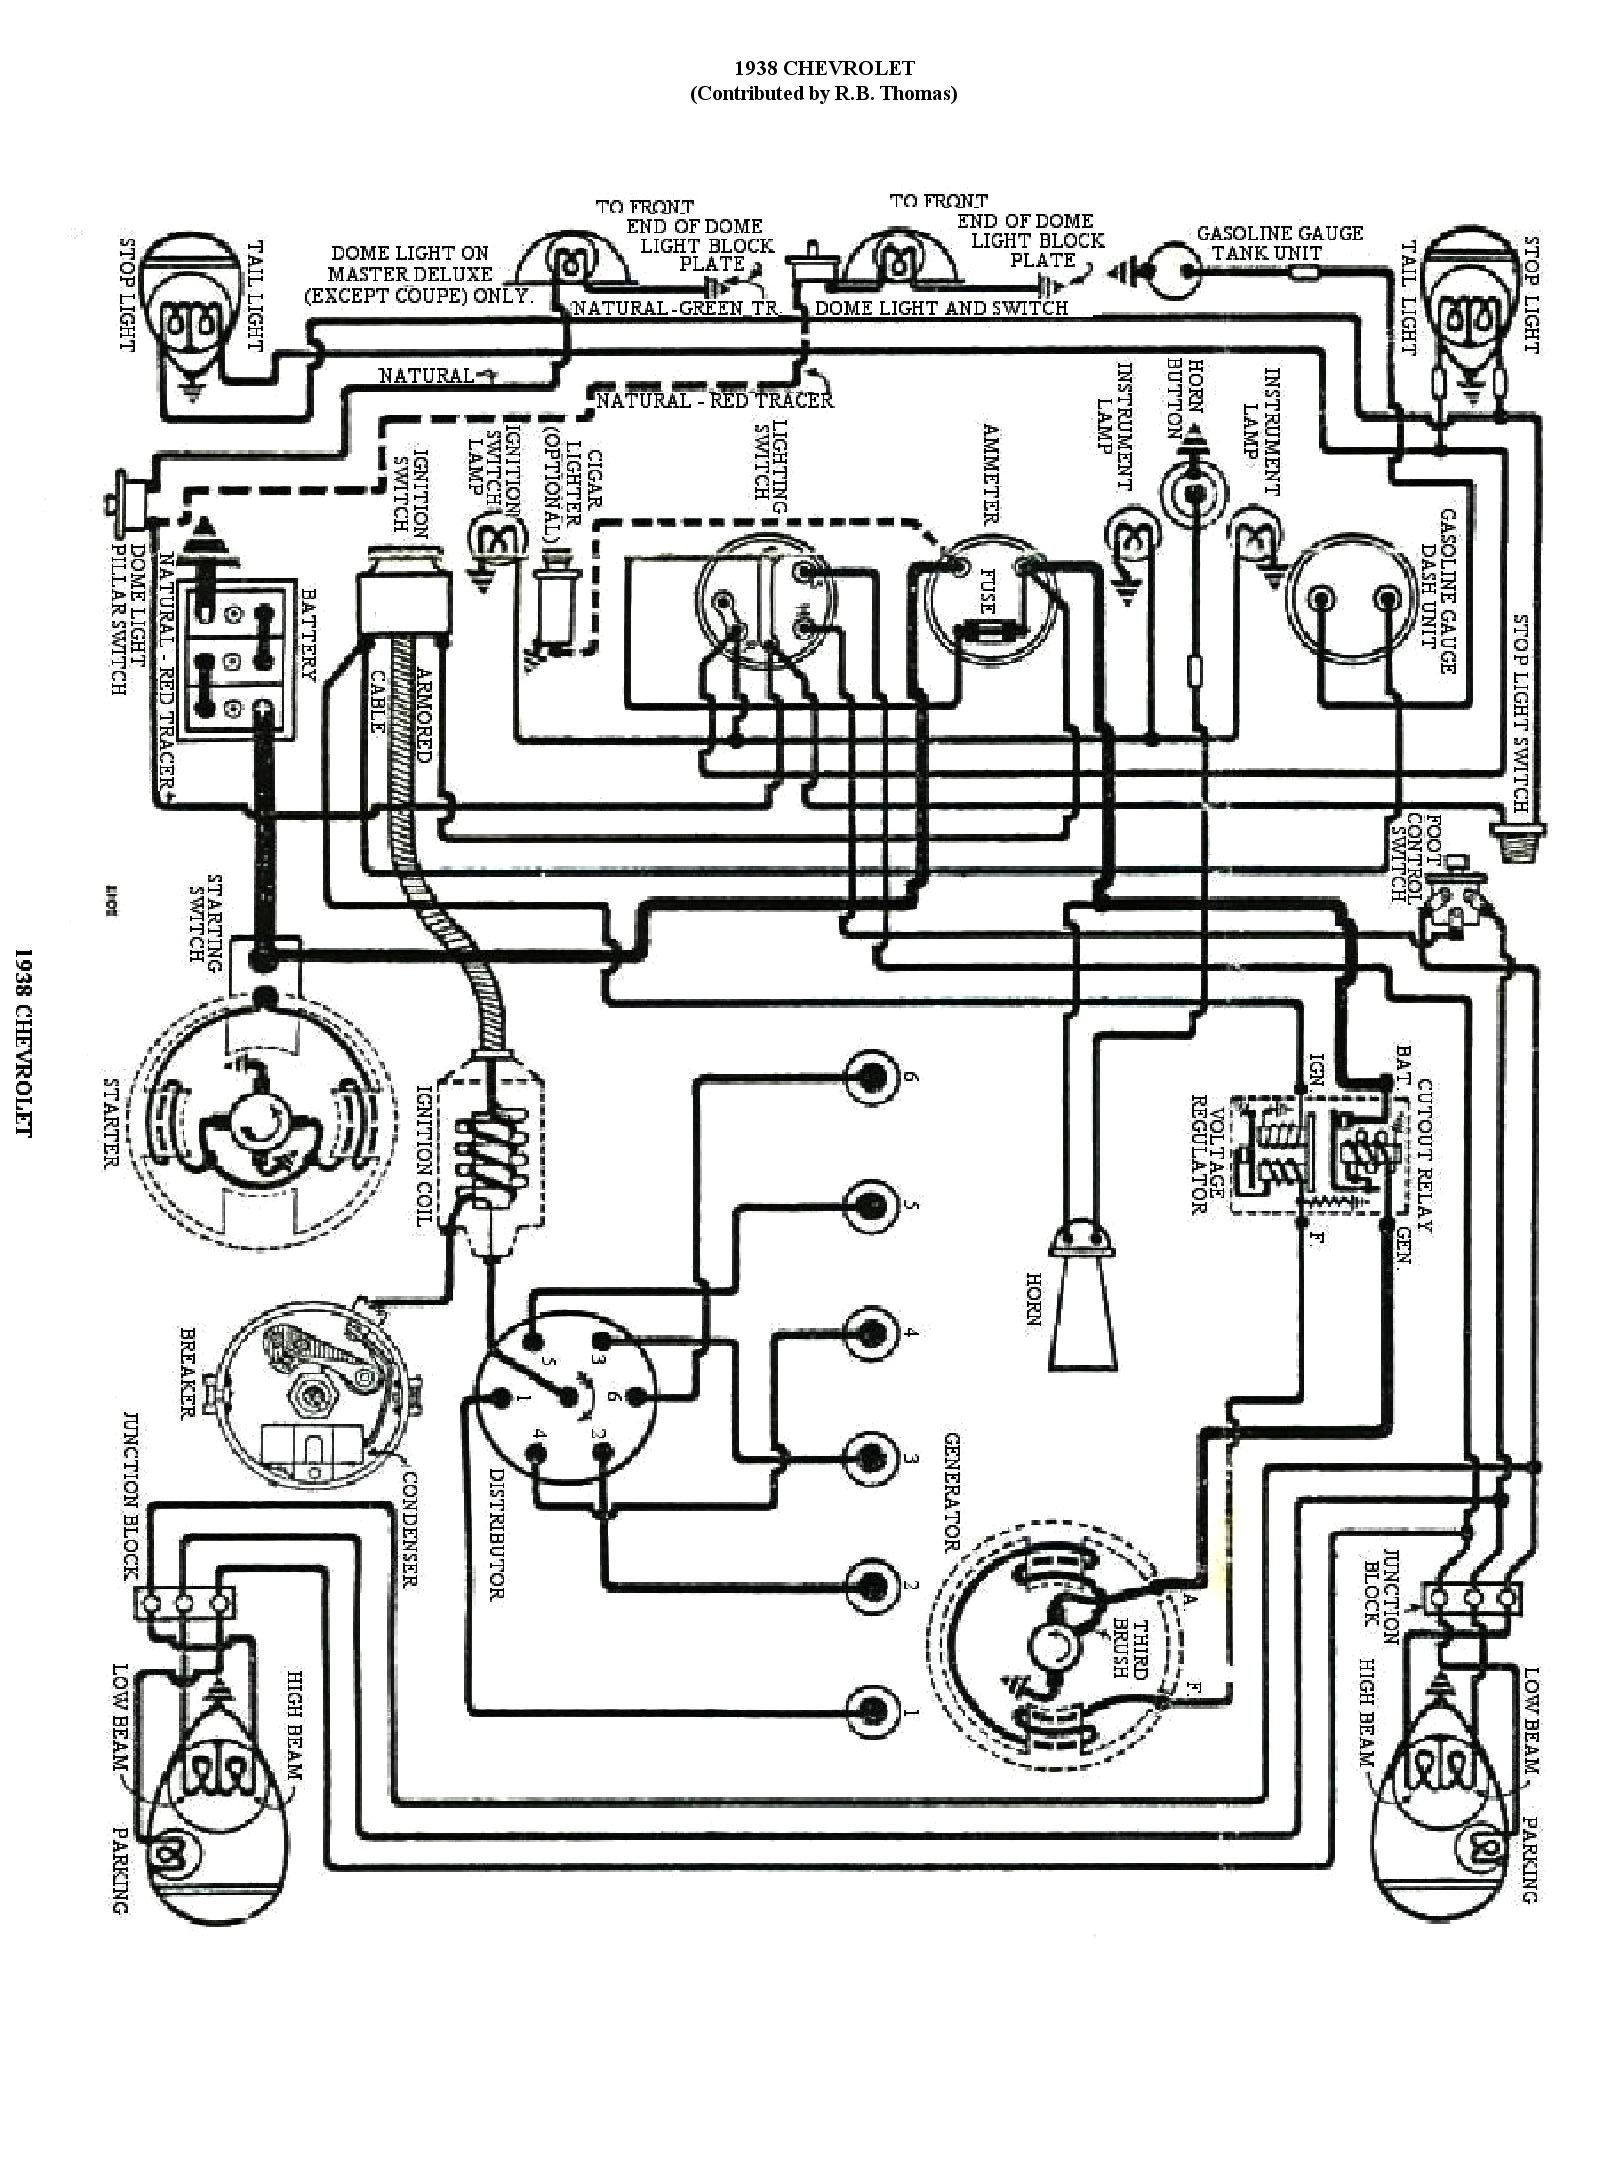 Chevrolet 1938 Car Wiring Harness - Schematic Wiring Diagram •